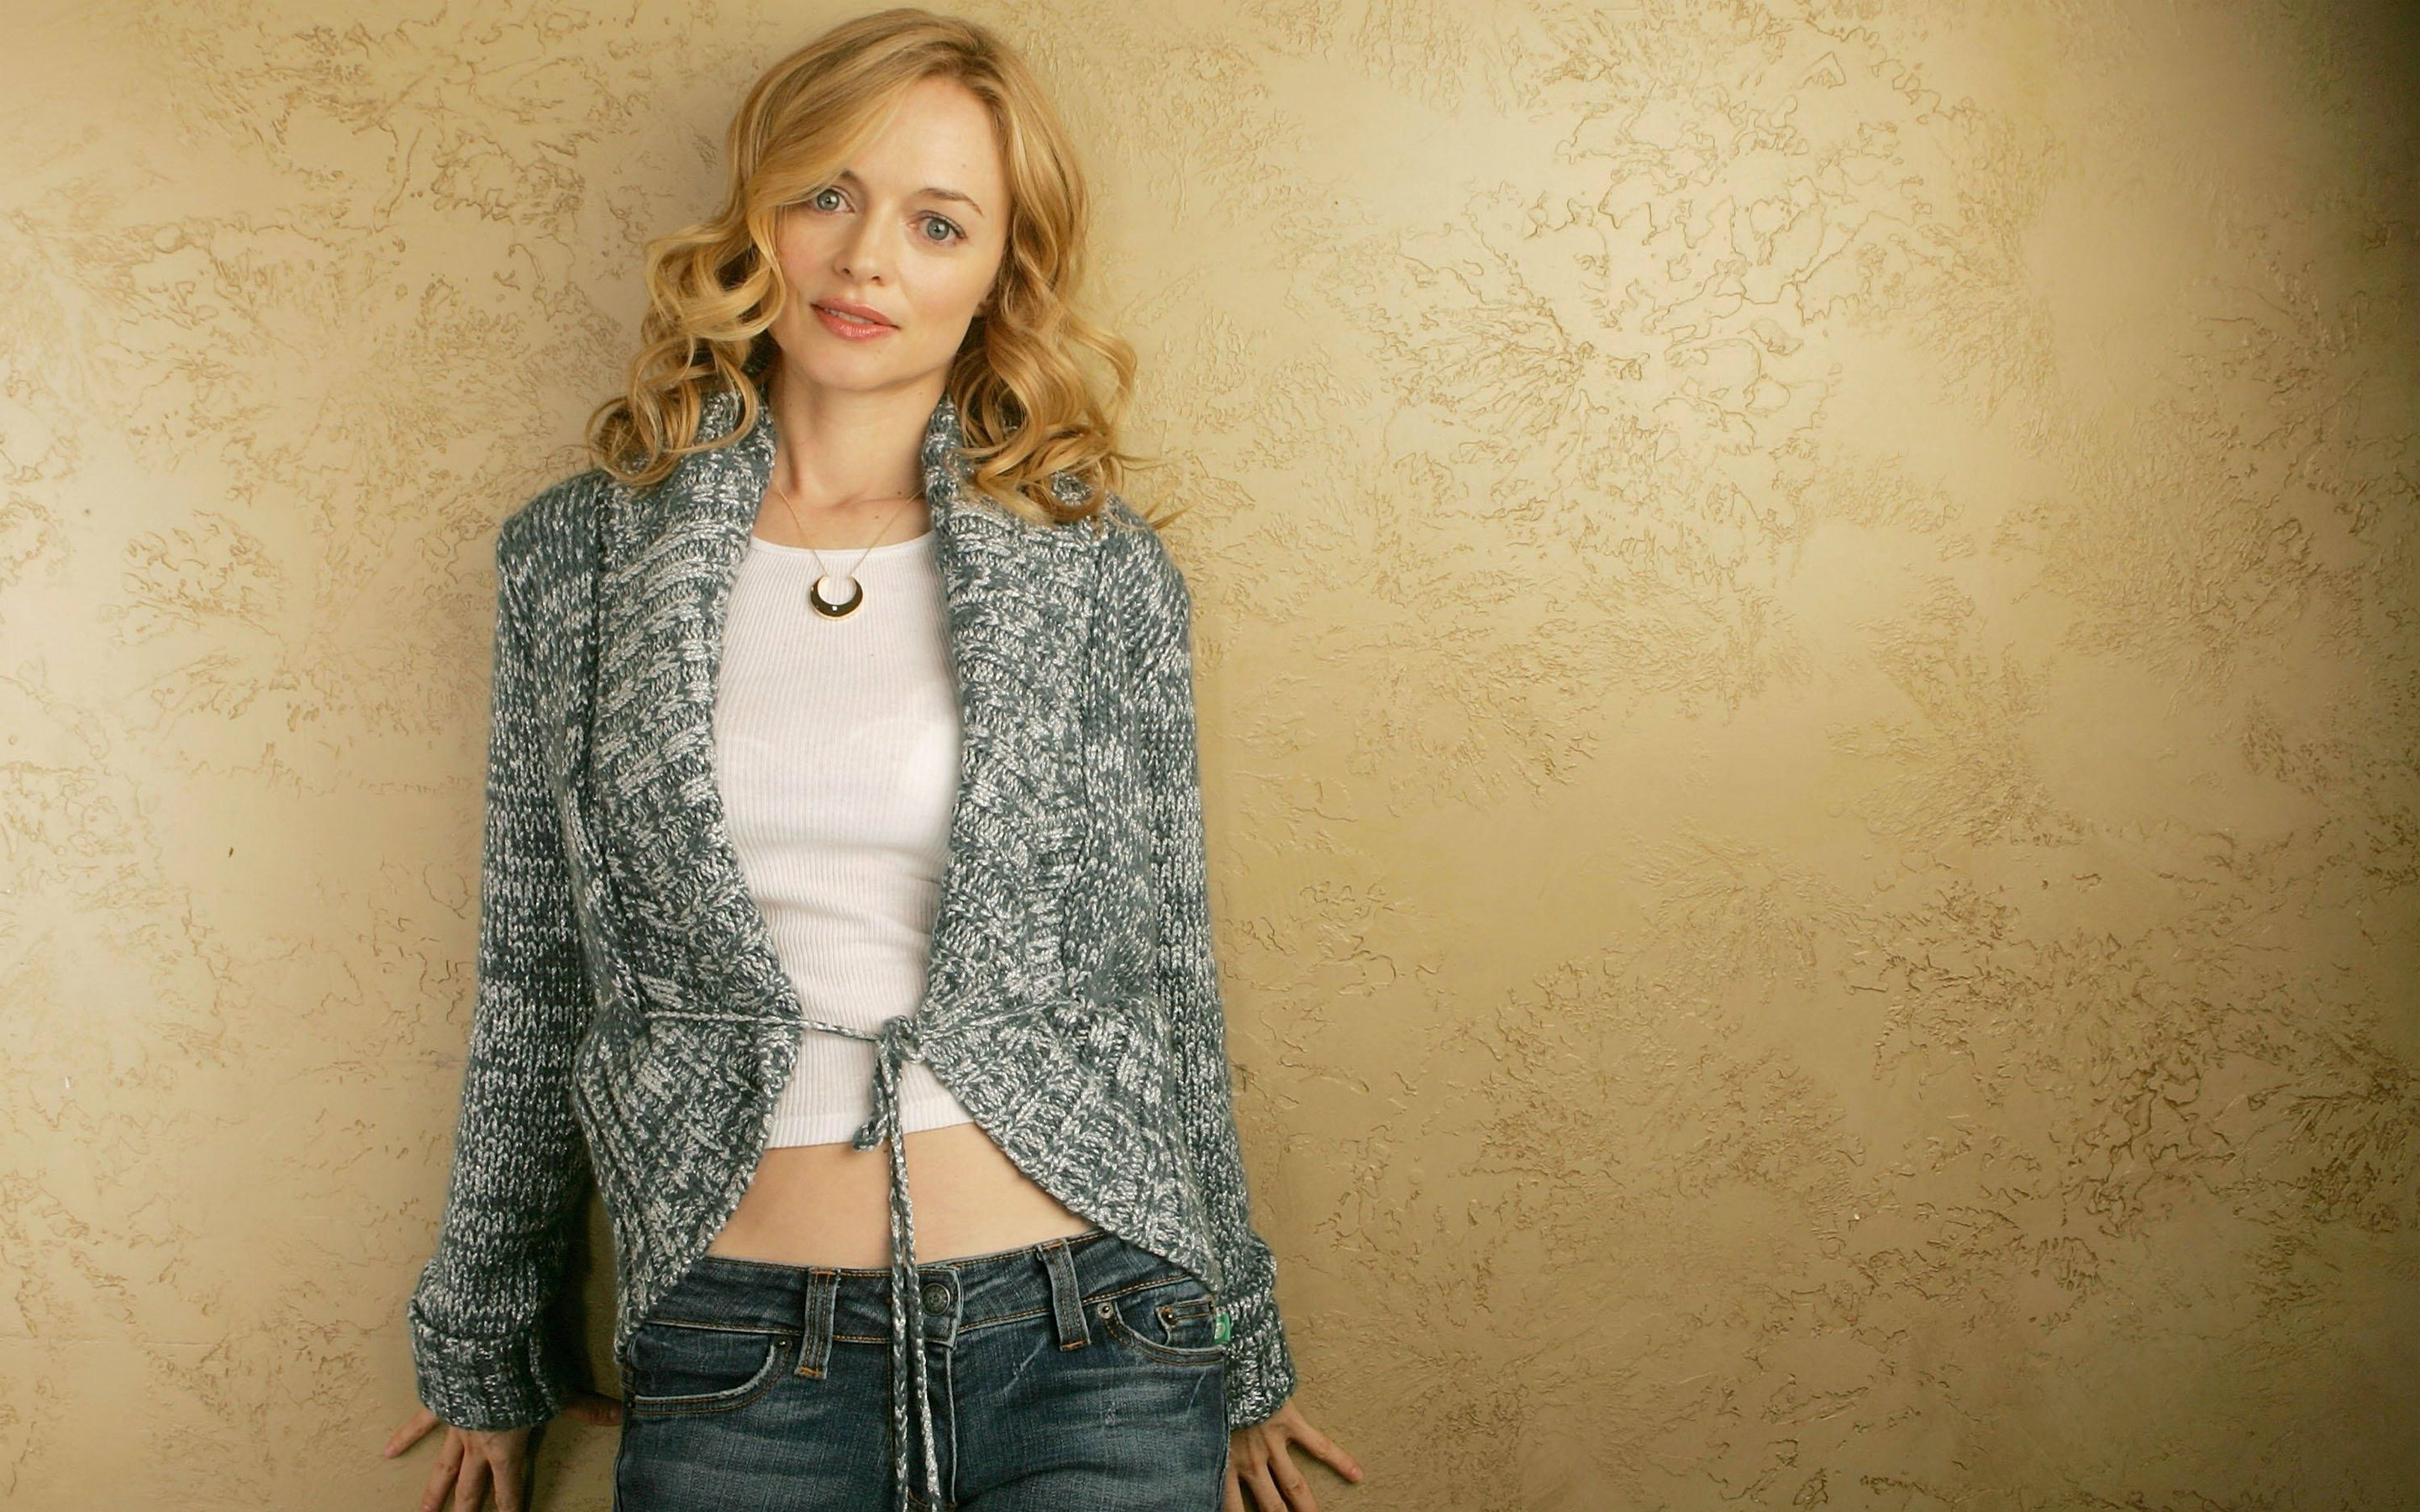 wallpaper heather graham - photo #19